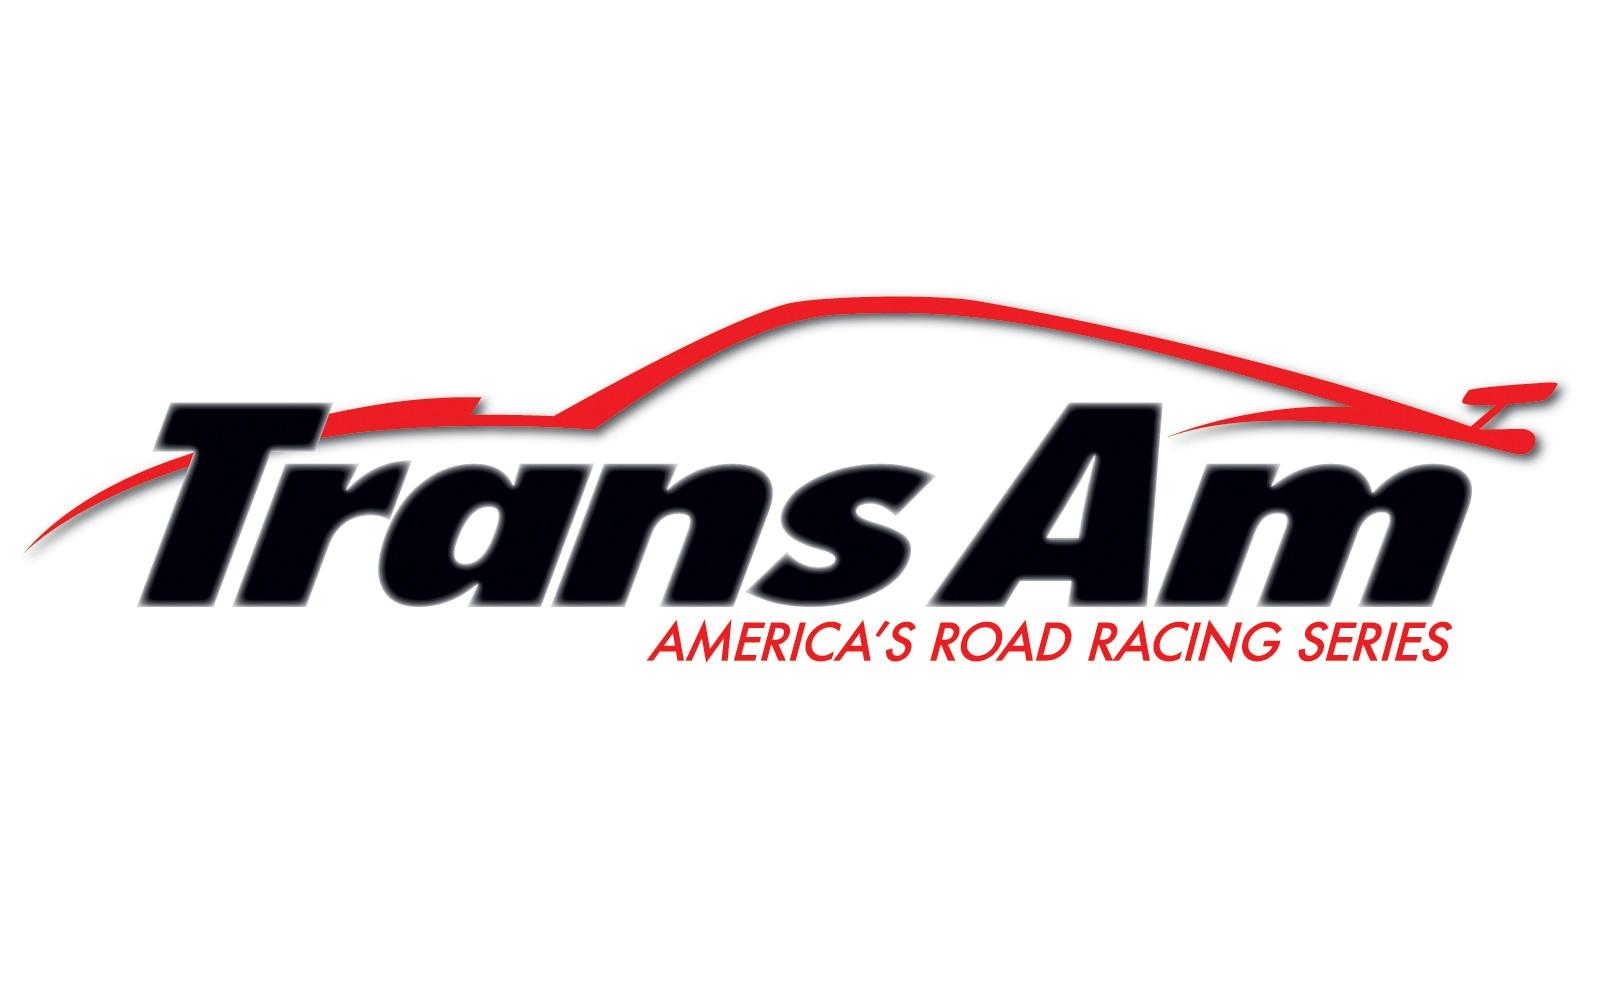 Discovery Day for Trans Am 2 Camaro Race Cars